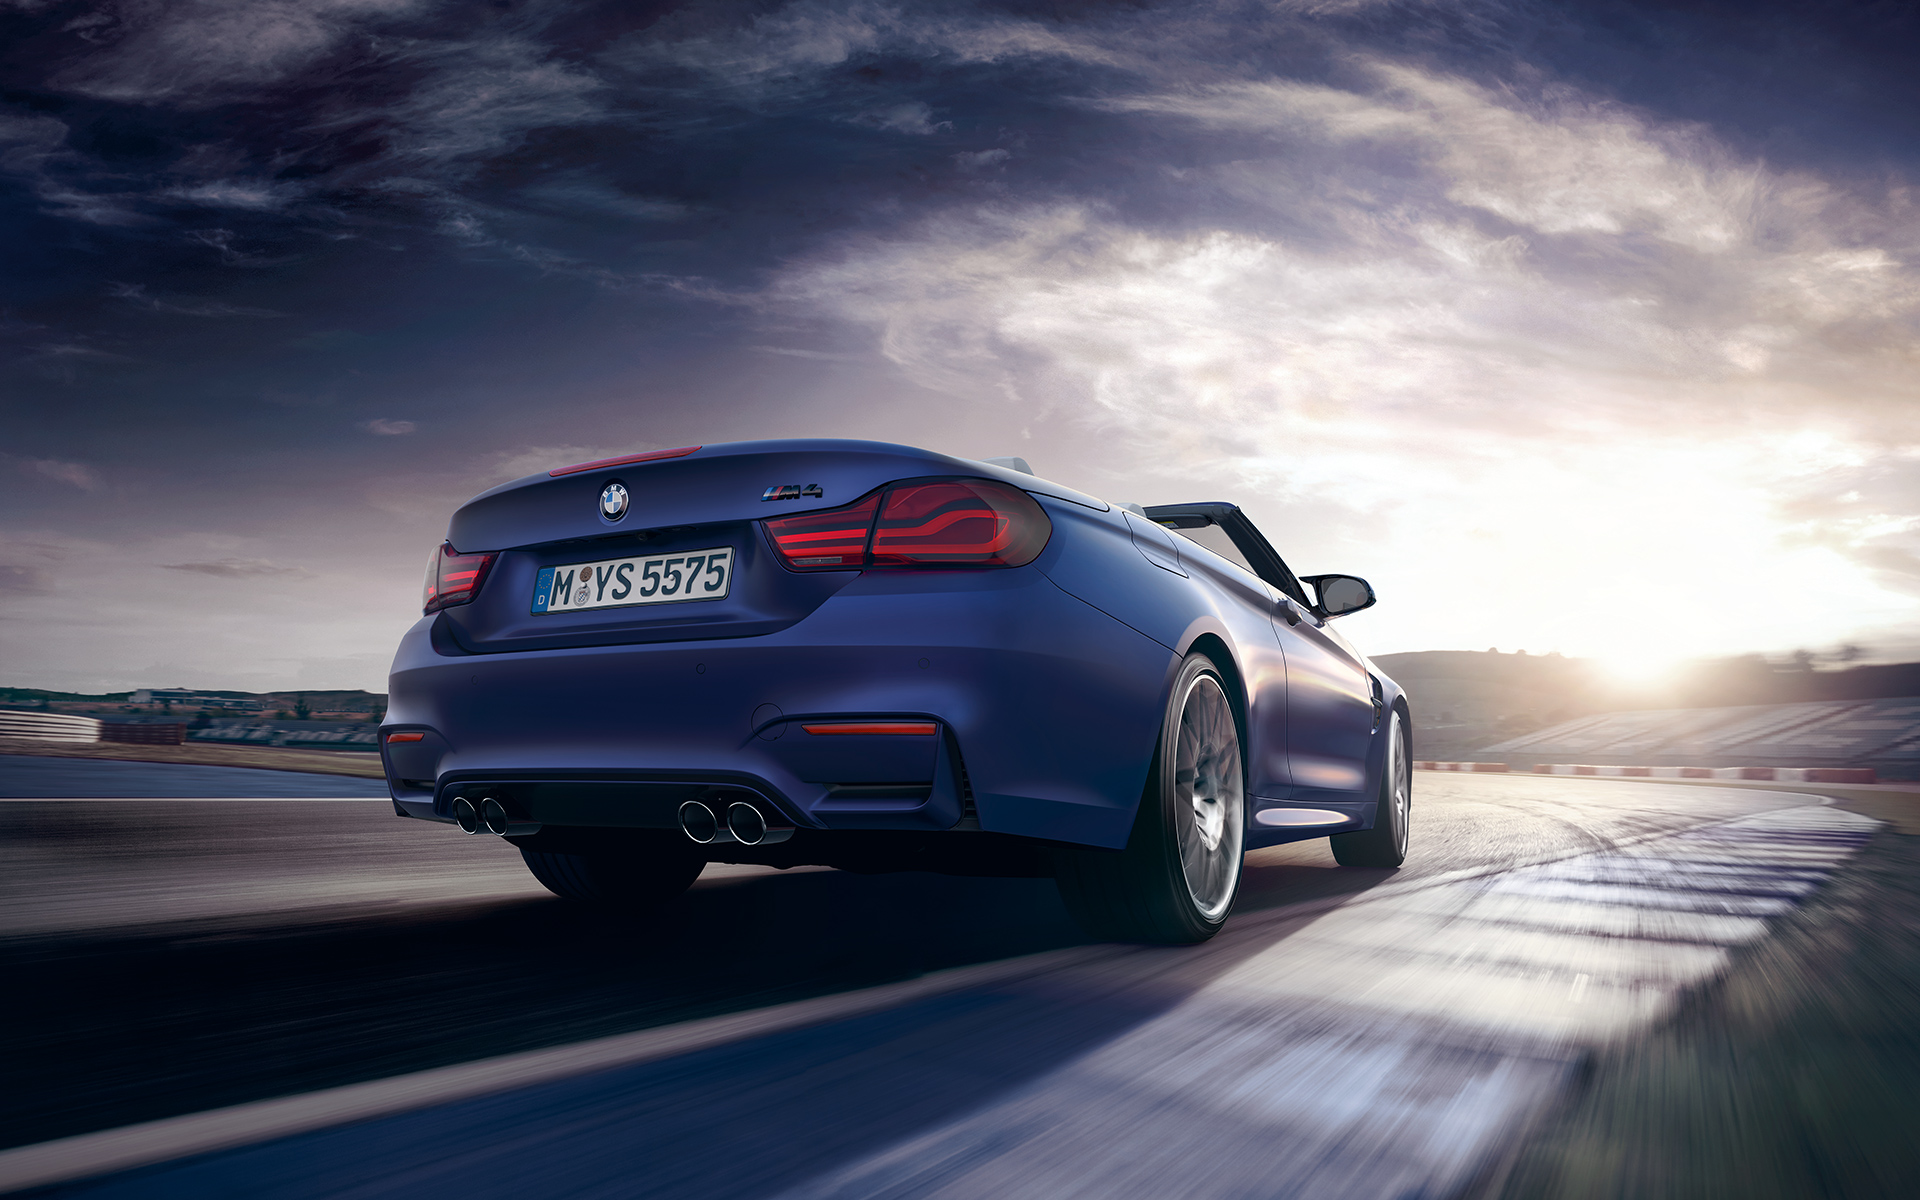 BMW M4 Cabriolet Rear View racetrack driving